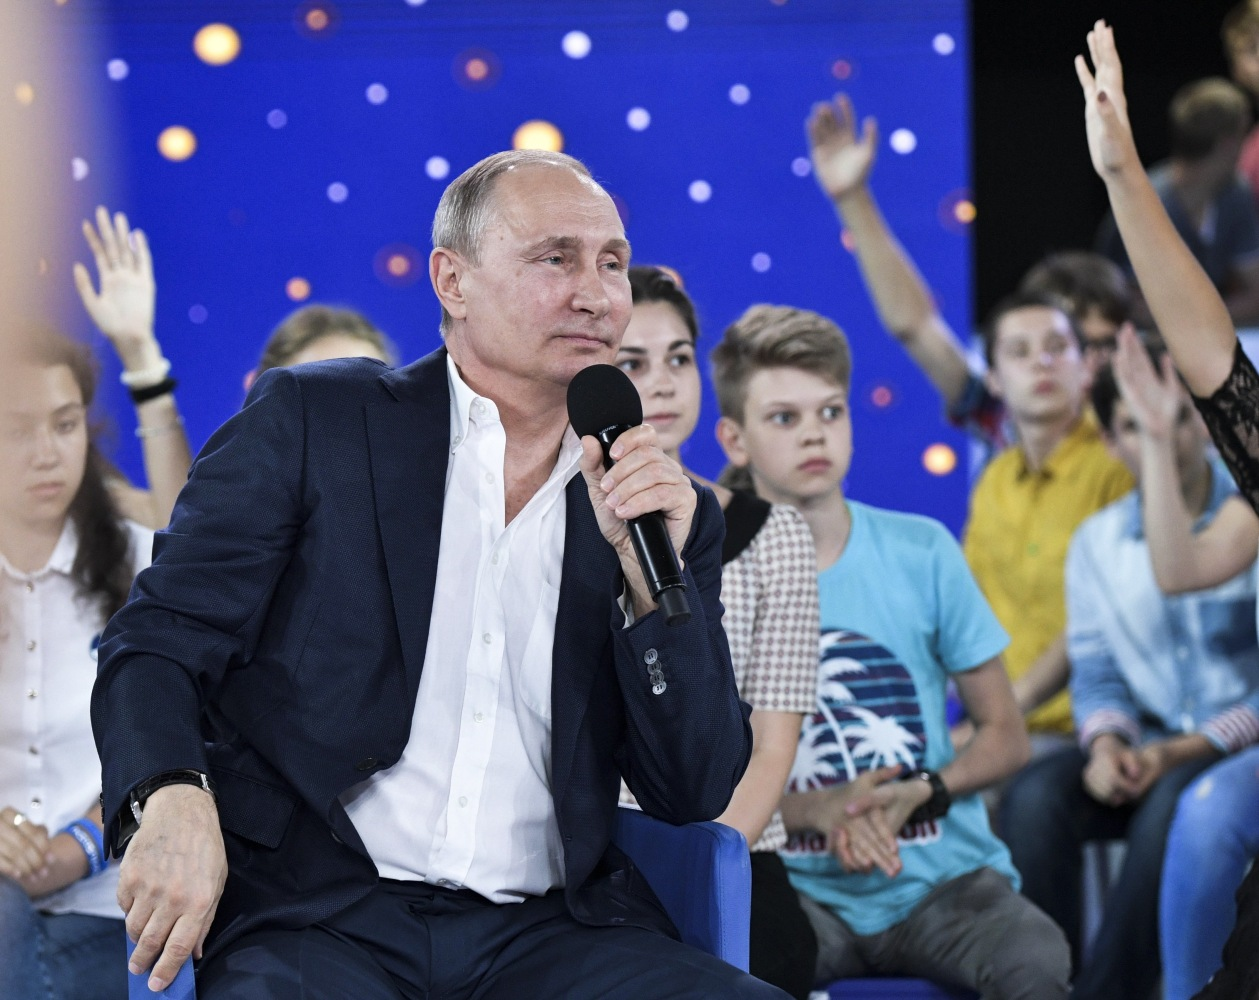 Putin says yet to decide whether to run for president again